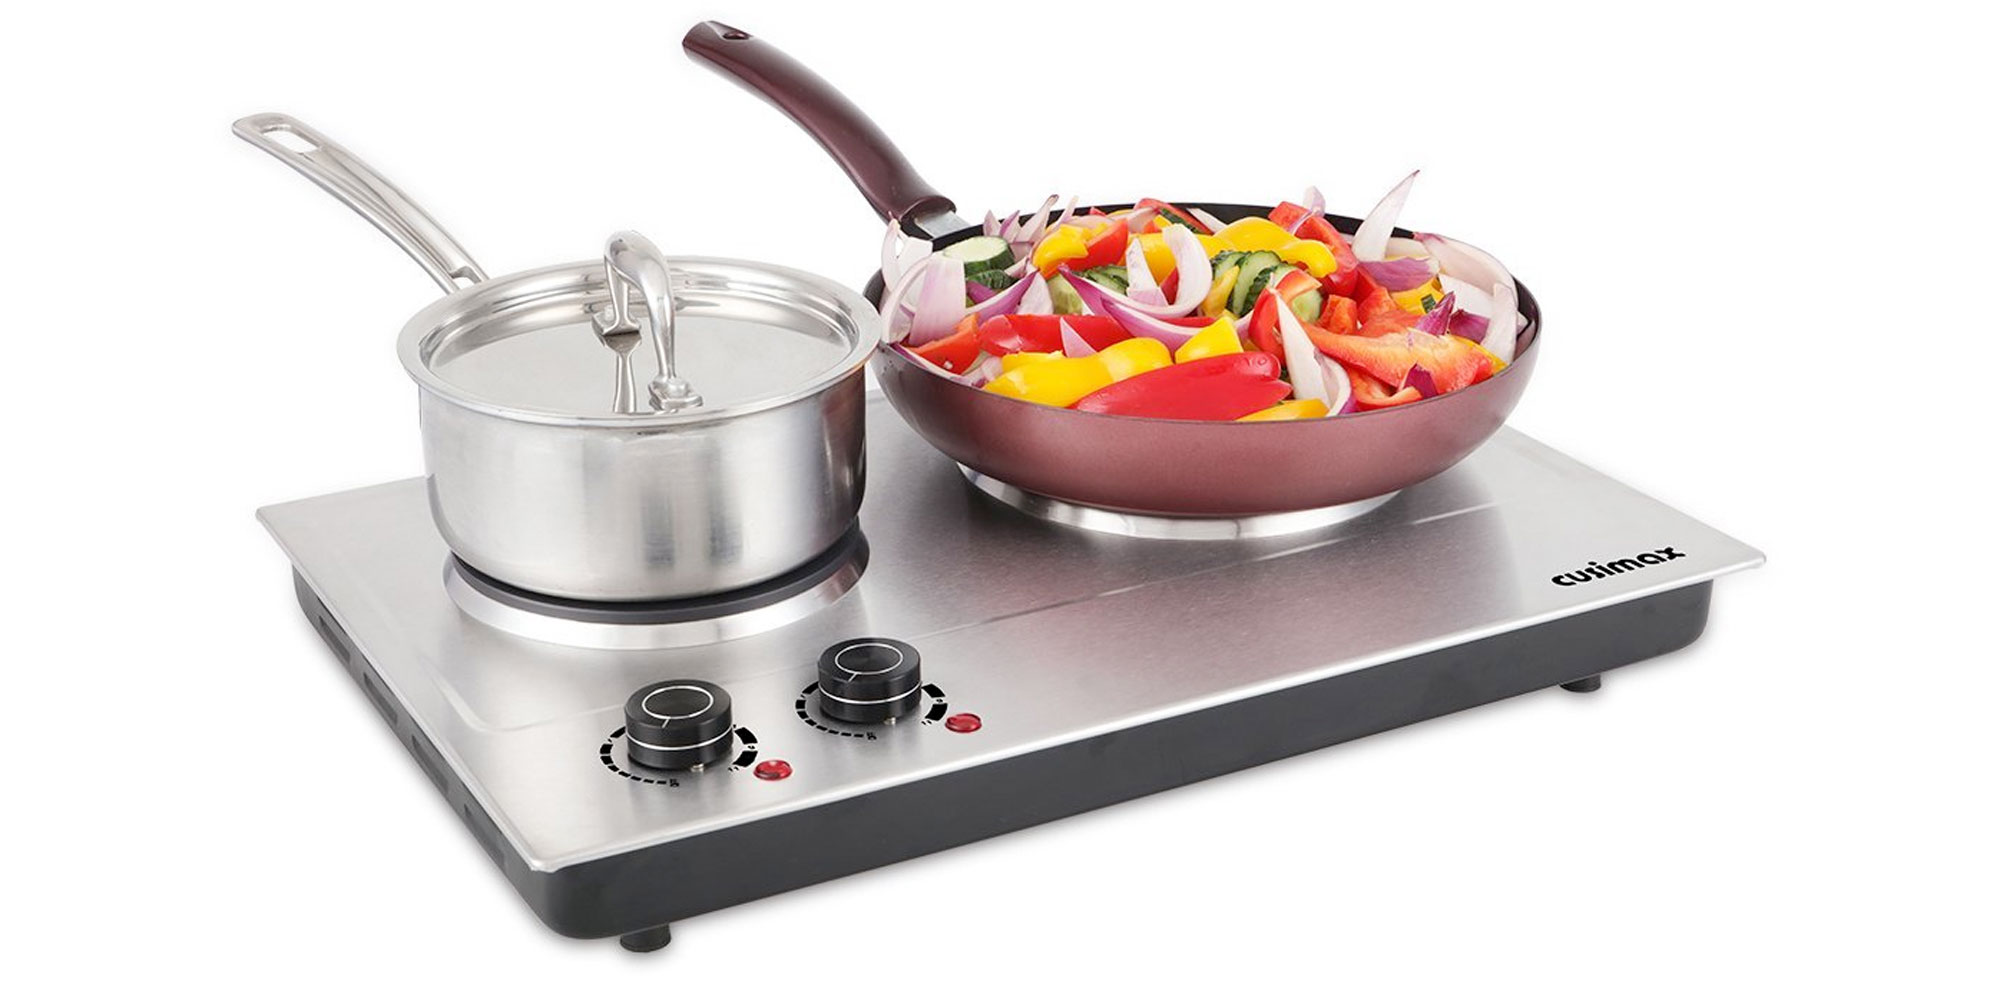 Heat water, cook eggs, more w/ this dual 1800W hot plate for $34 shipped at Amazon